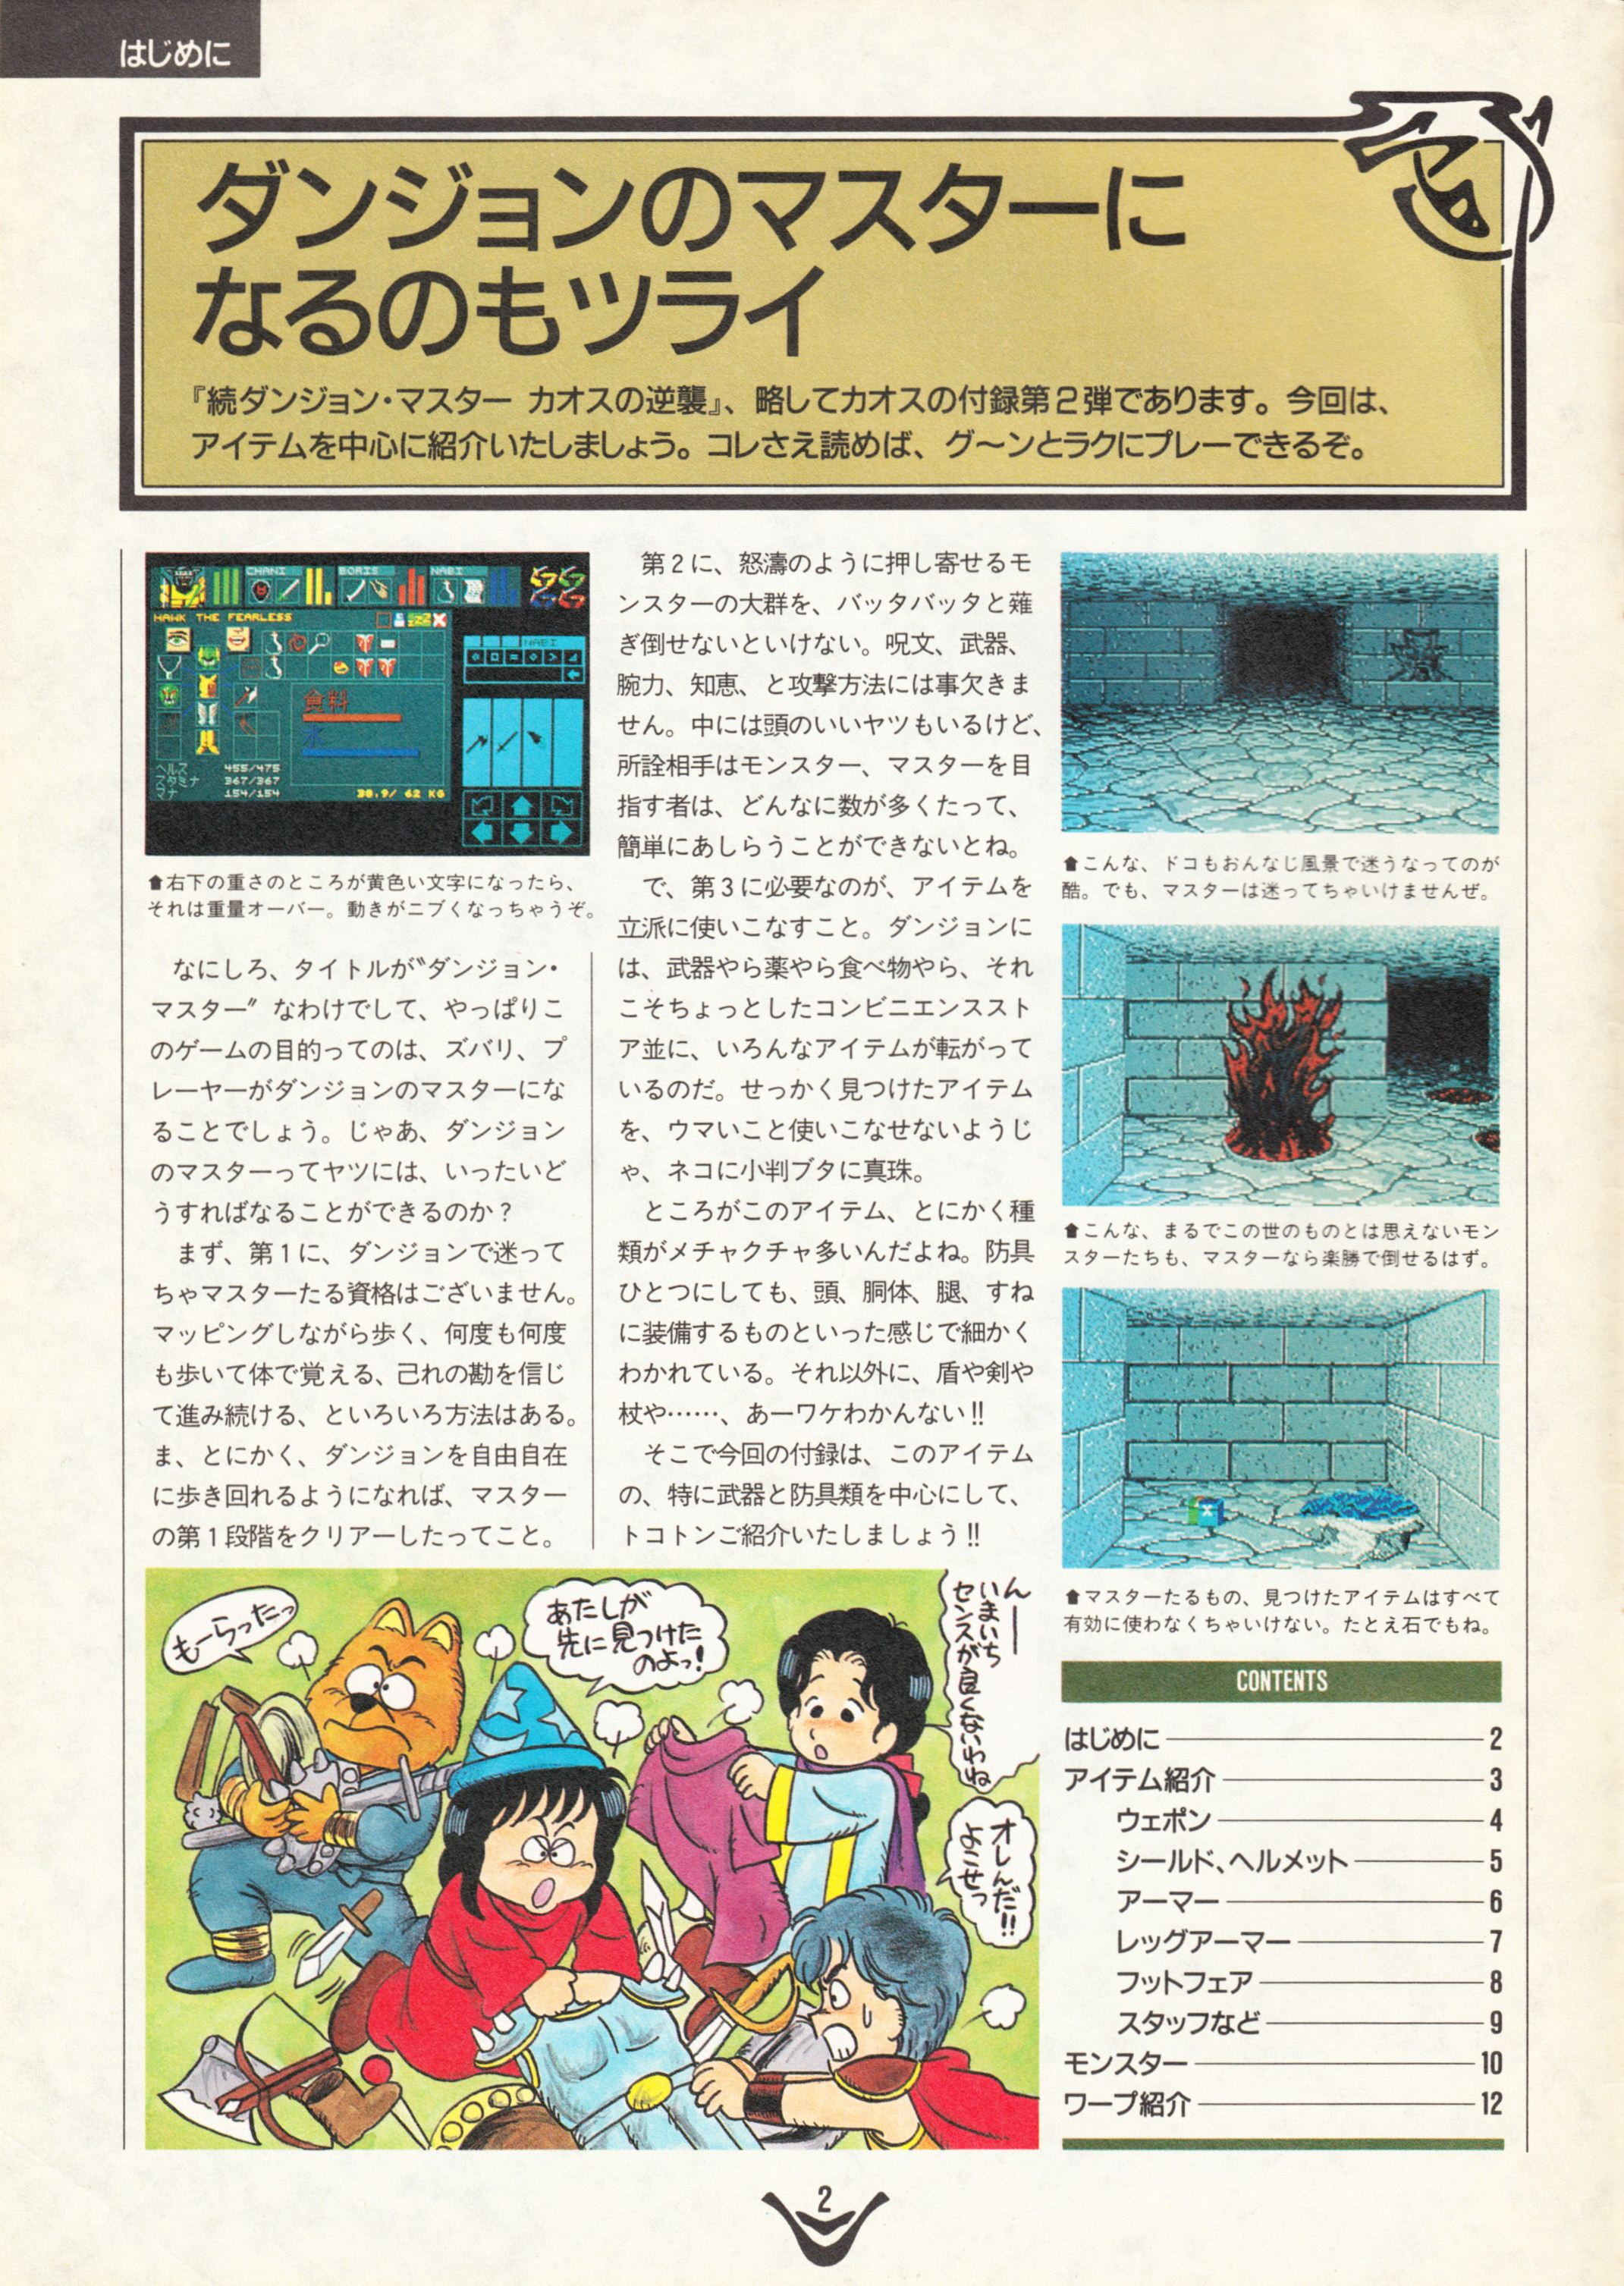 Special Supplement - Chaos Strikes Back Guide published in Japanese magazine 'Login', Vol 10 No 3 01 February 1991, Page 2